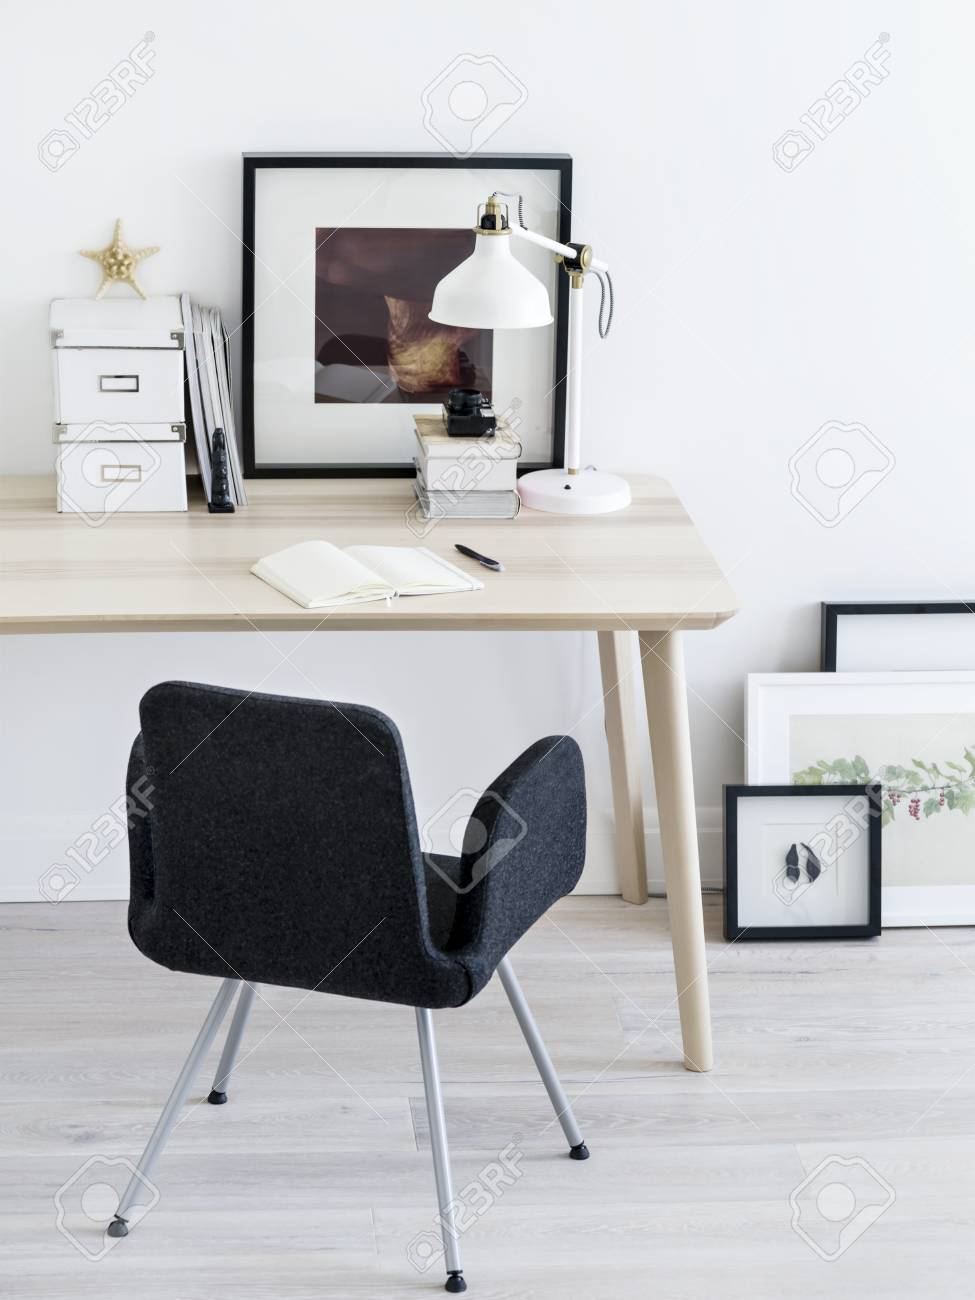 Comfortable chair standing near small table and nice frames pictures in stylish room stock photo